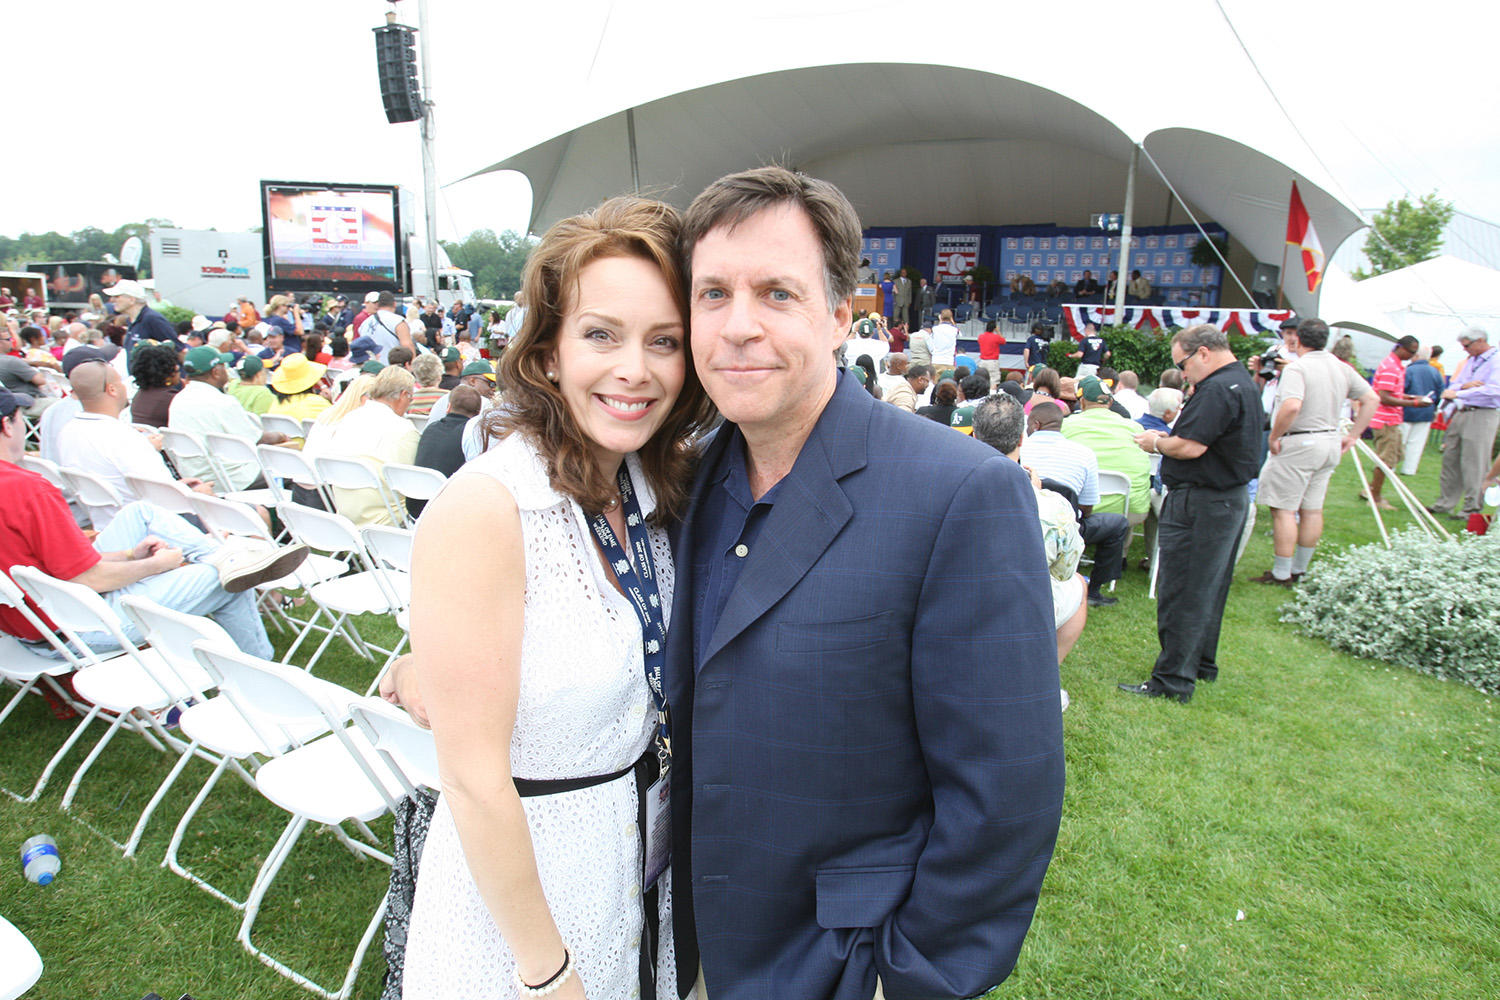 Bob Costas poses with his wife Jill Sutton at Hall of Fame Weekend in 2009. (Bill Greenblatt/National Baseball Hall of Fame and Museum)